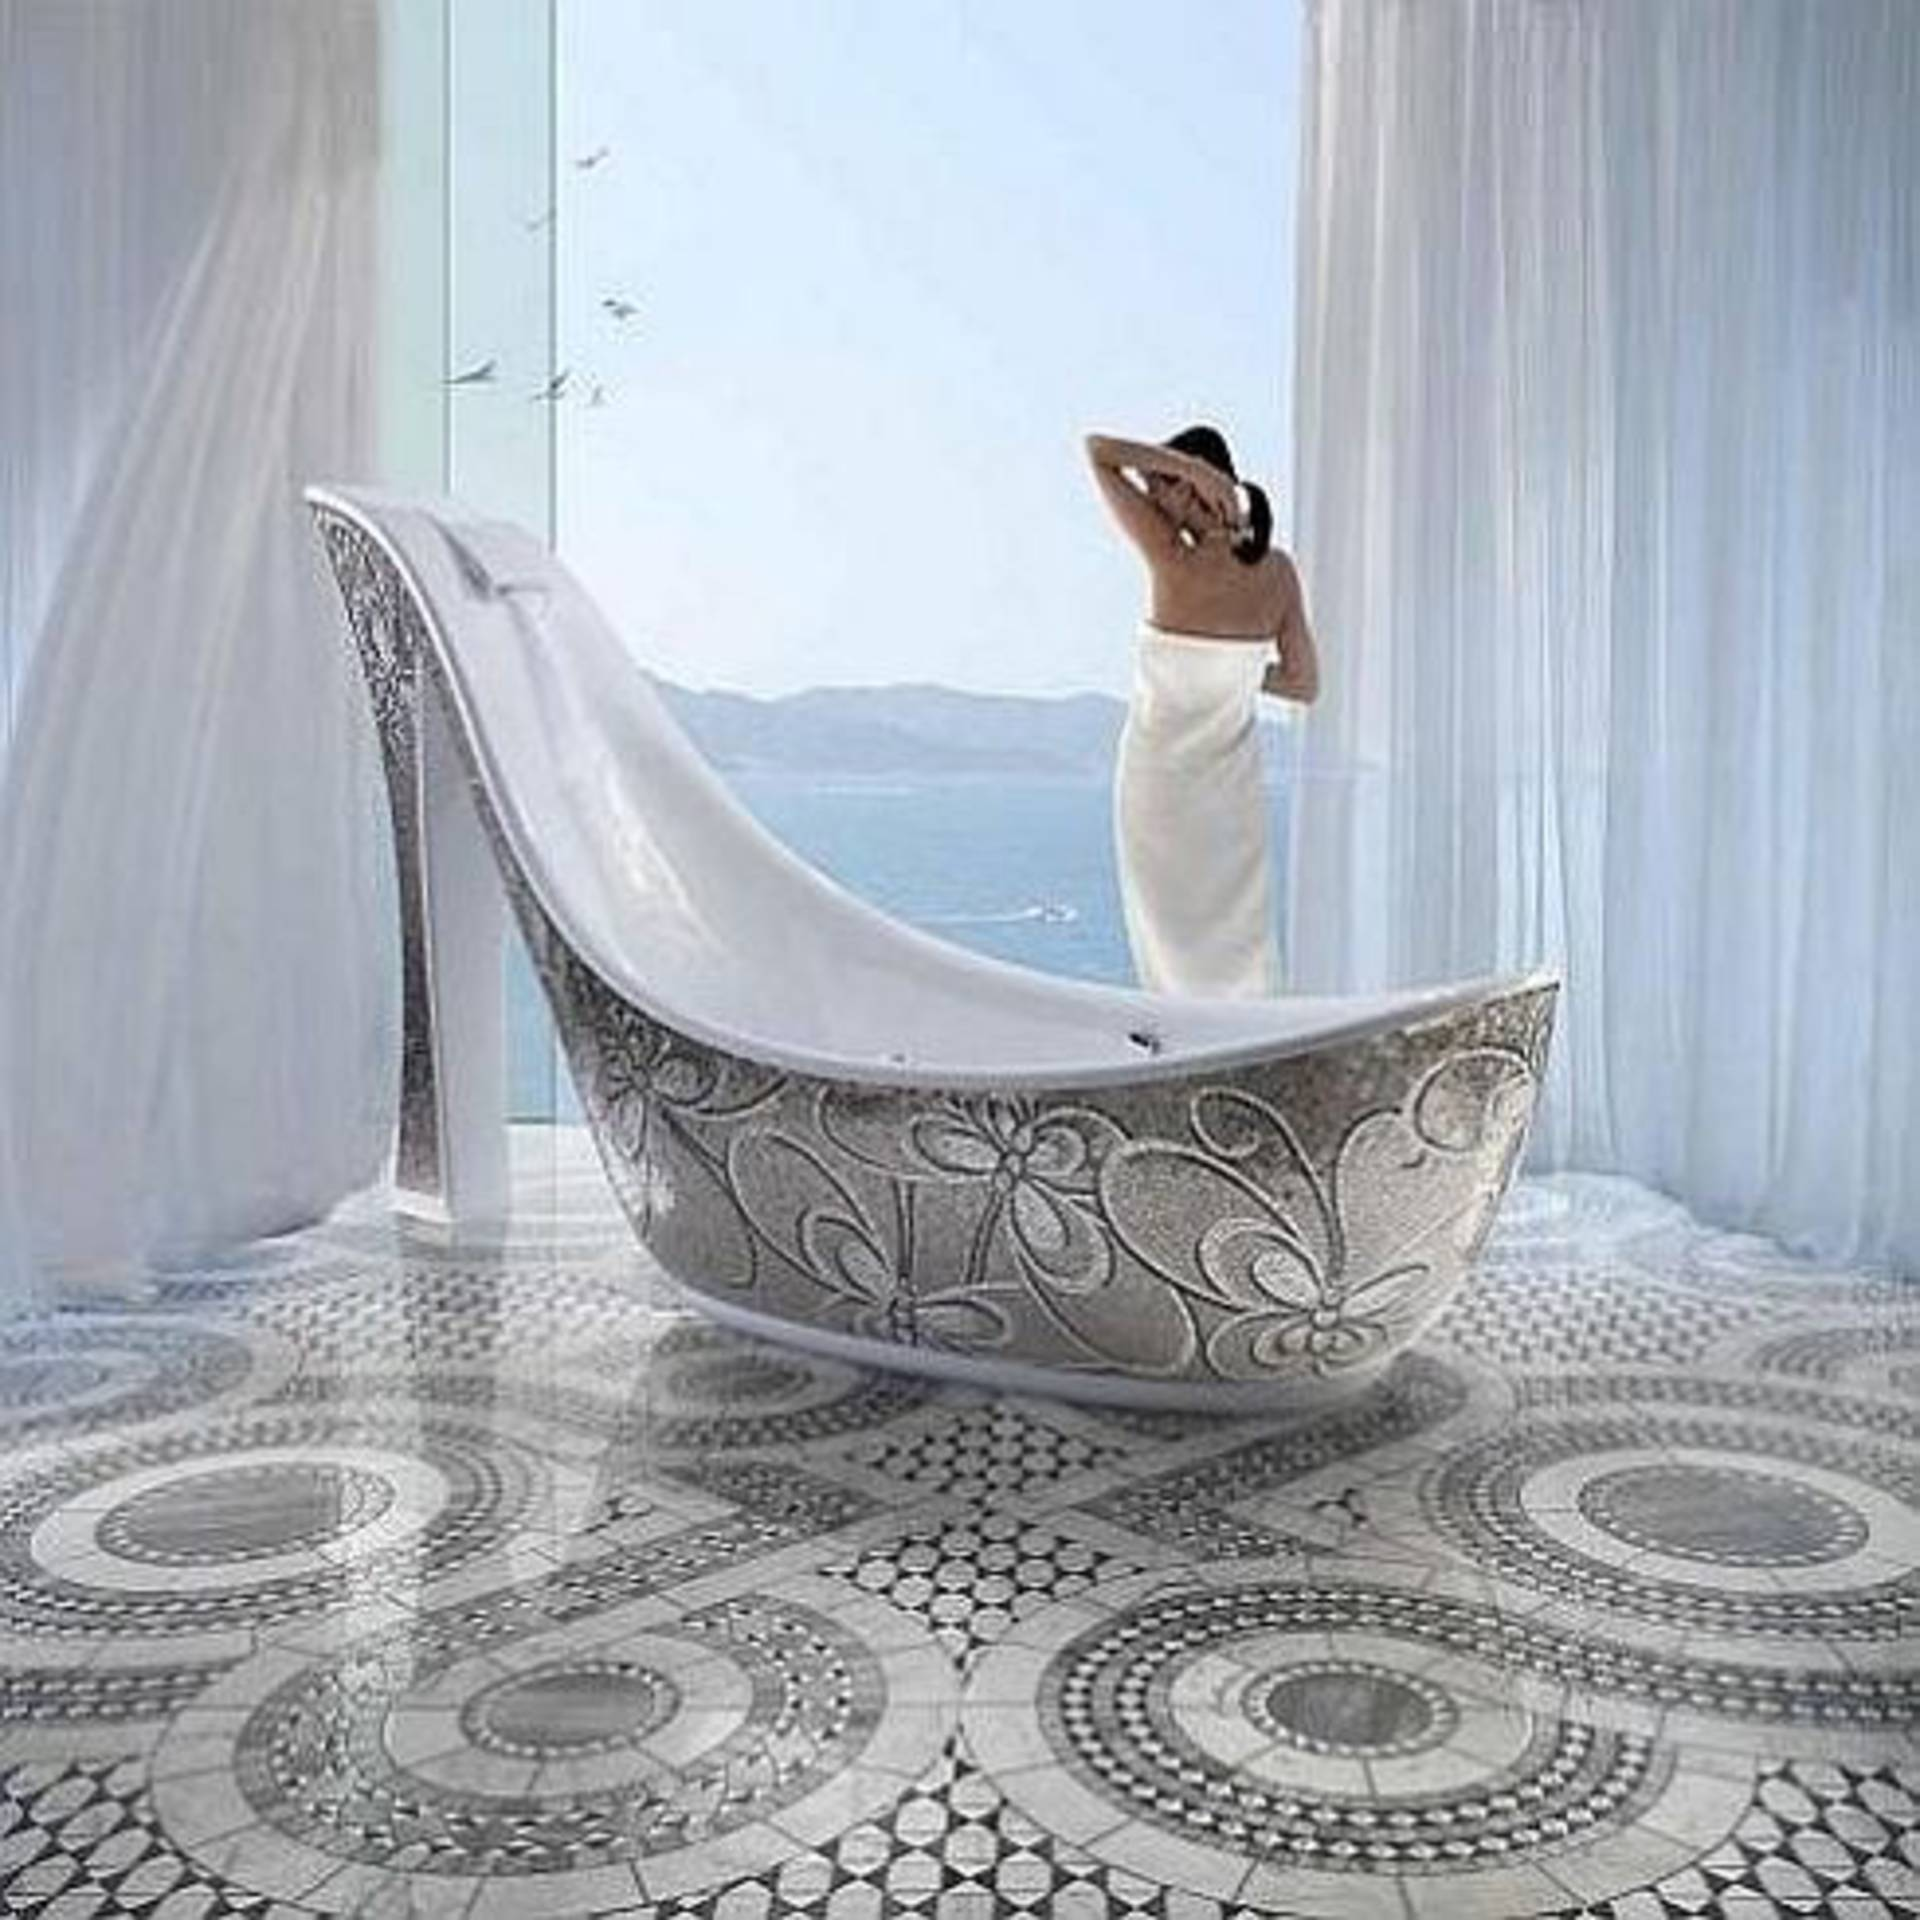 Exclusive Shoe Bathtubs by SICIS: for Real Ladies - Home Reviews